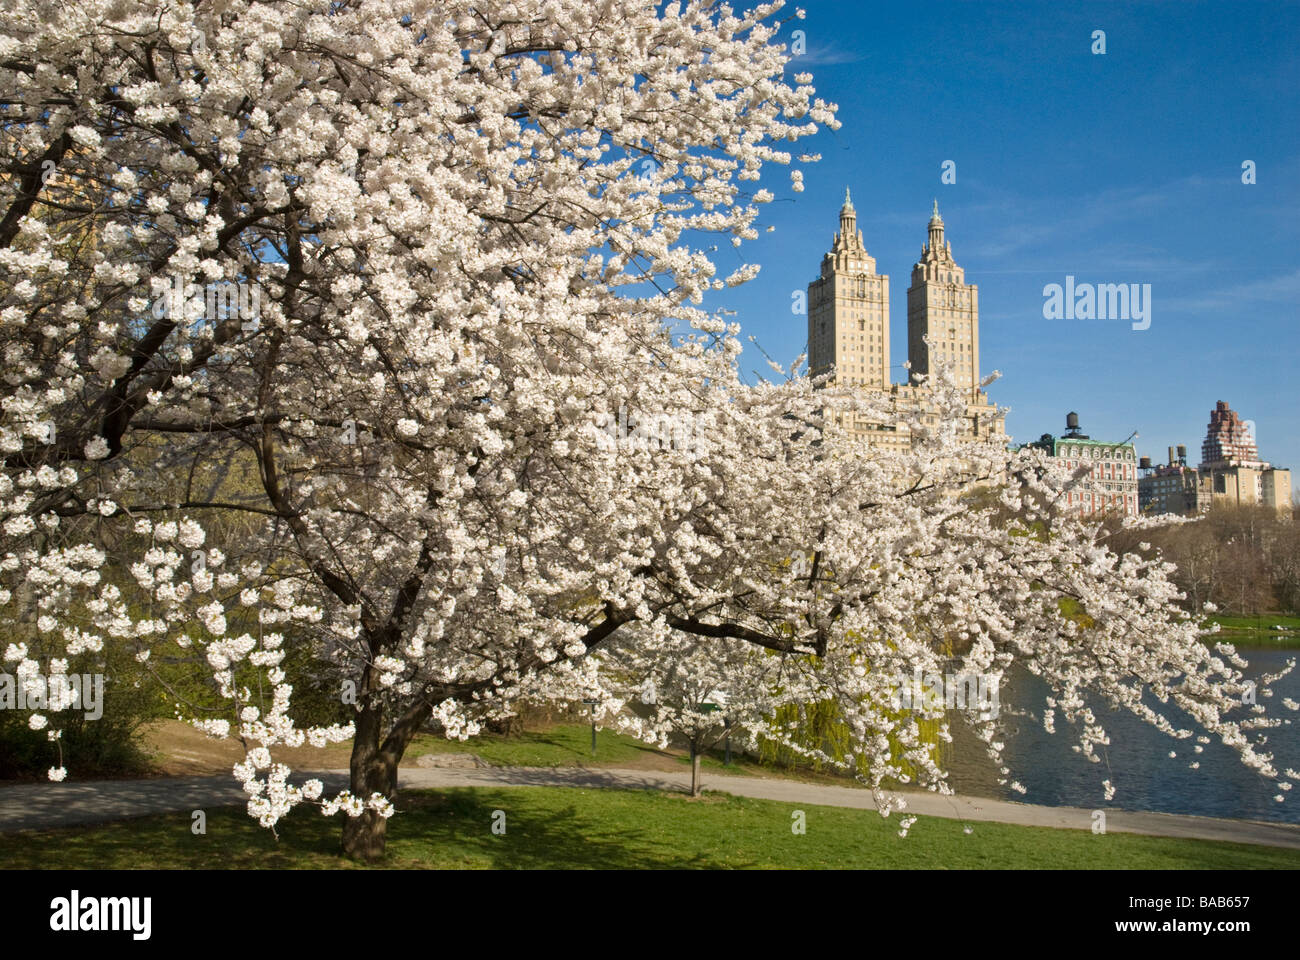 Cherry Blossoms in Central Park New York Stock Photo